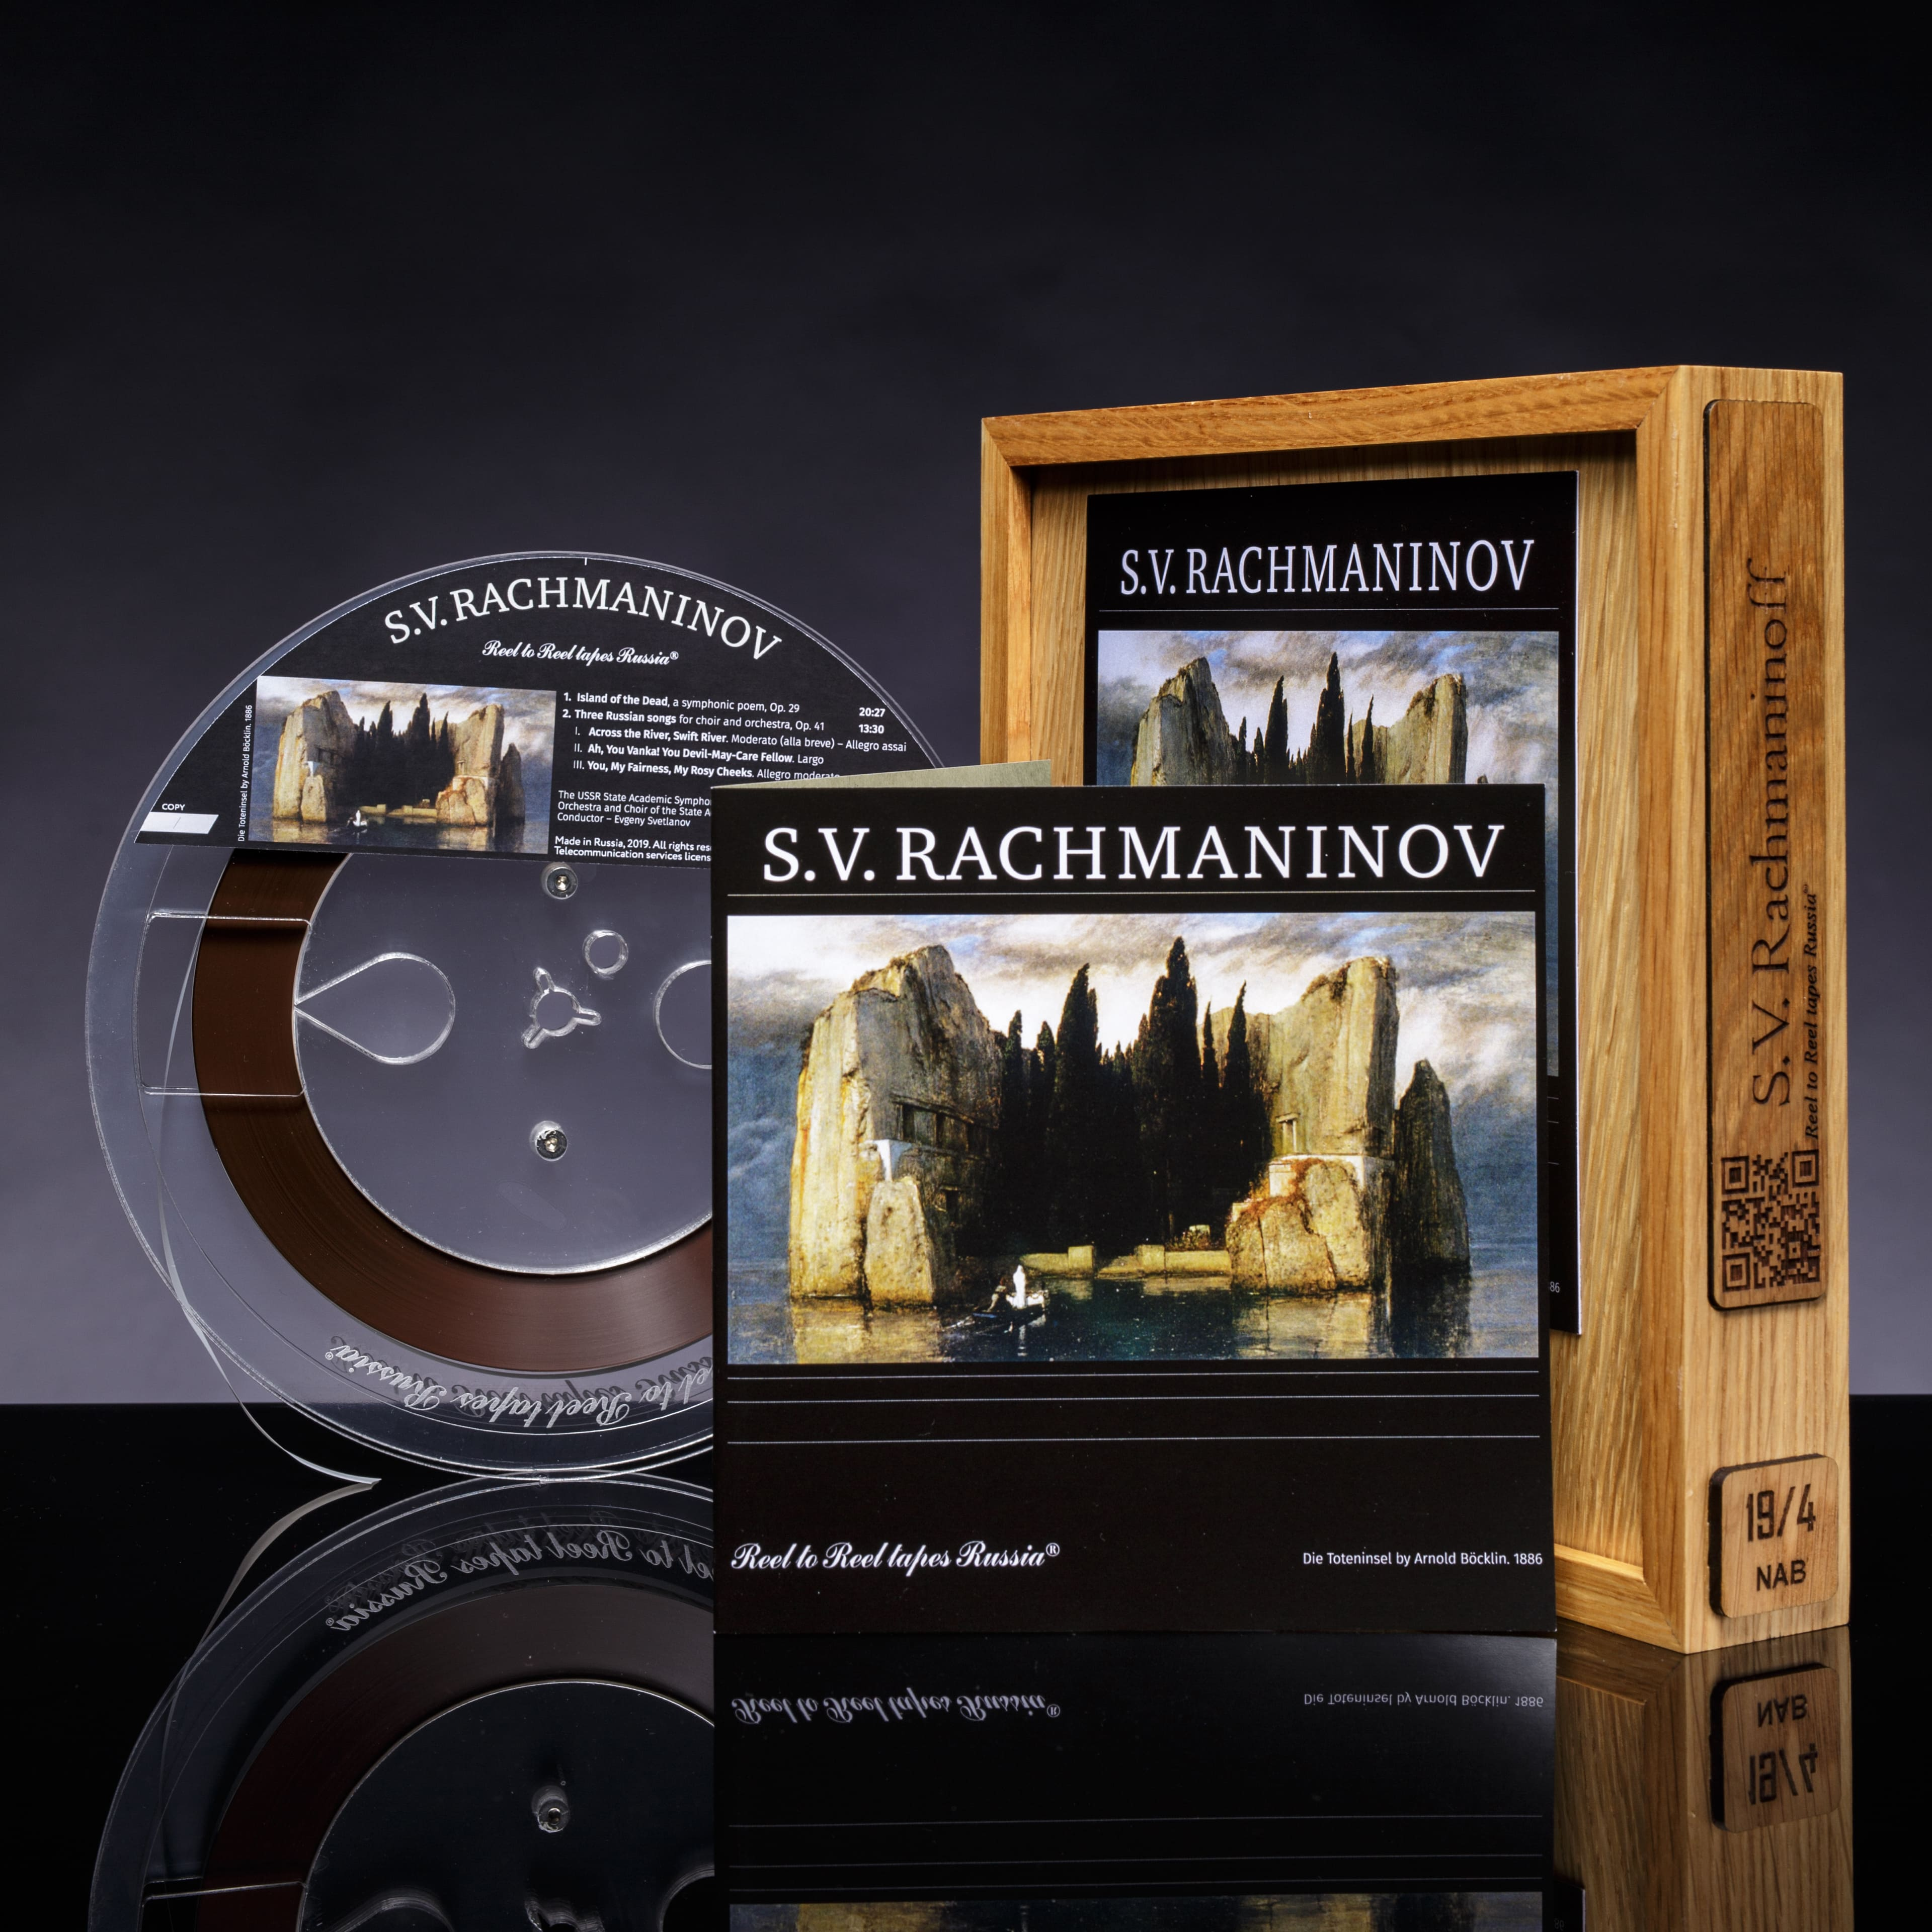 Rachmaninov Reel To Reel Tapes Russia